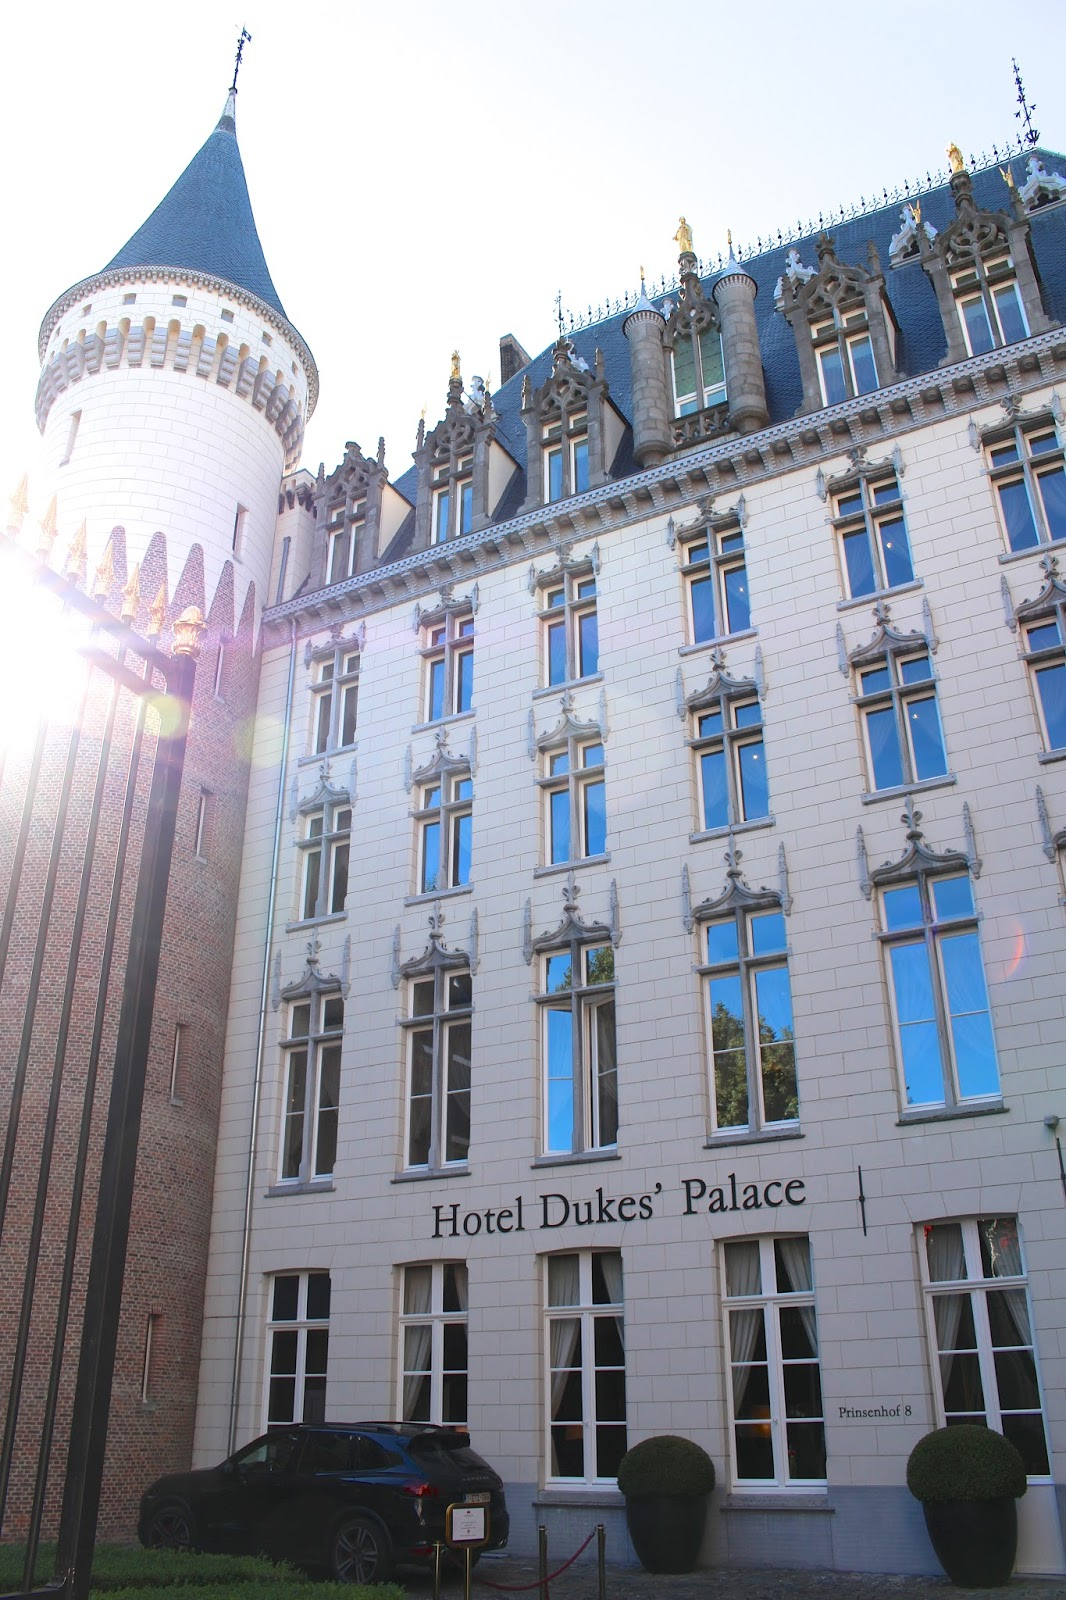 Luxury Hotel Dukes' Palace in Bruges Belgium